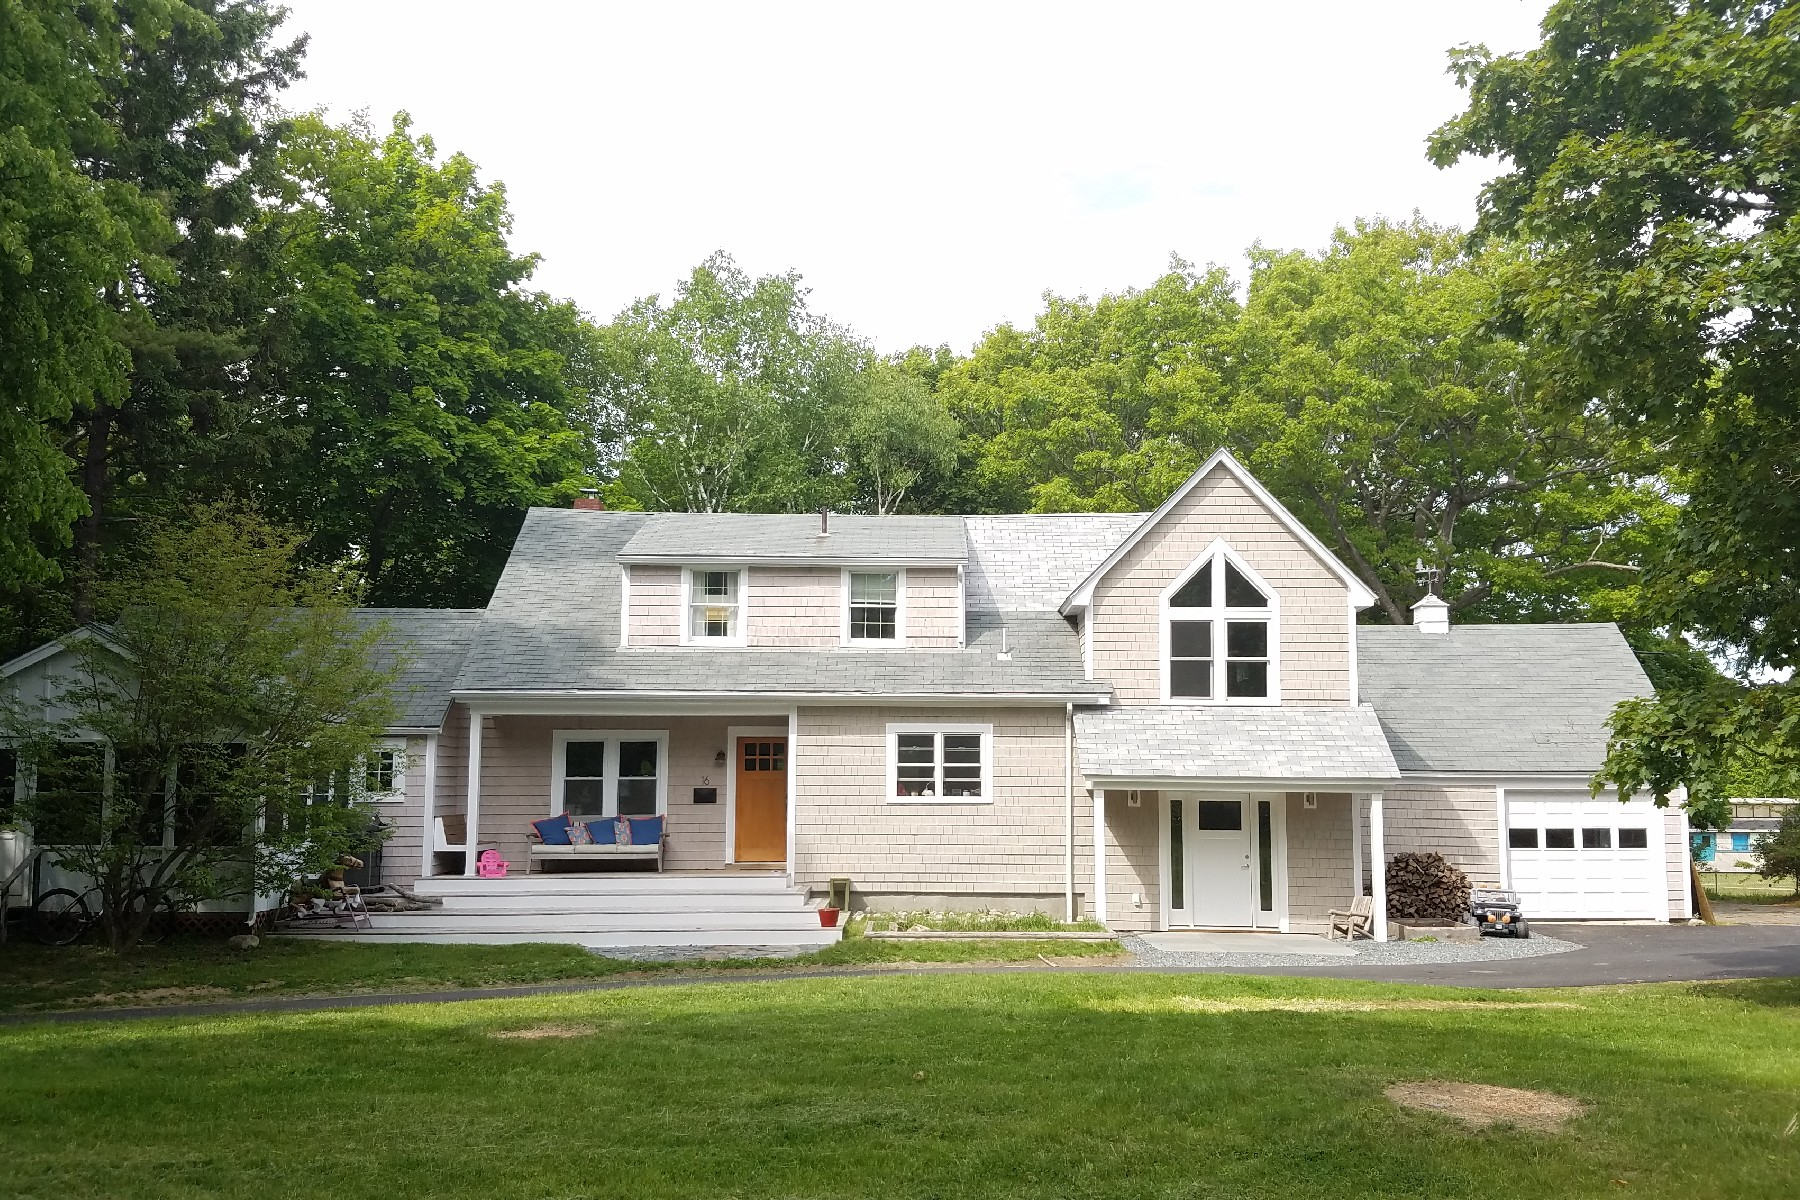 Single Family Home for Sale at Prospect Avenue 16 Prospect Avenue Bar Harbor, Maine, 04609 United States